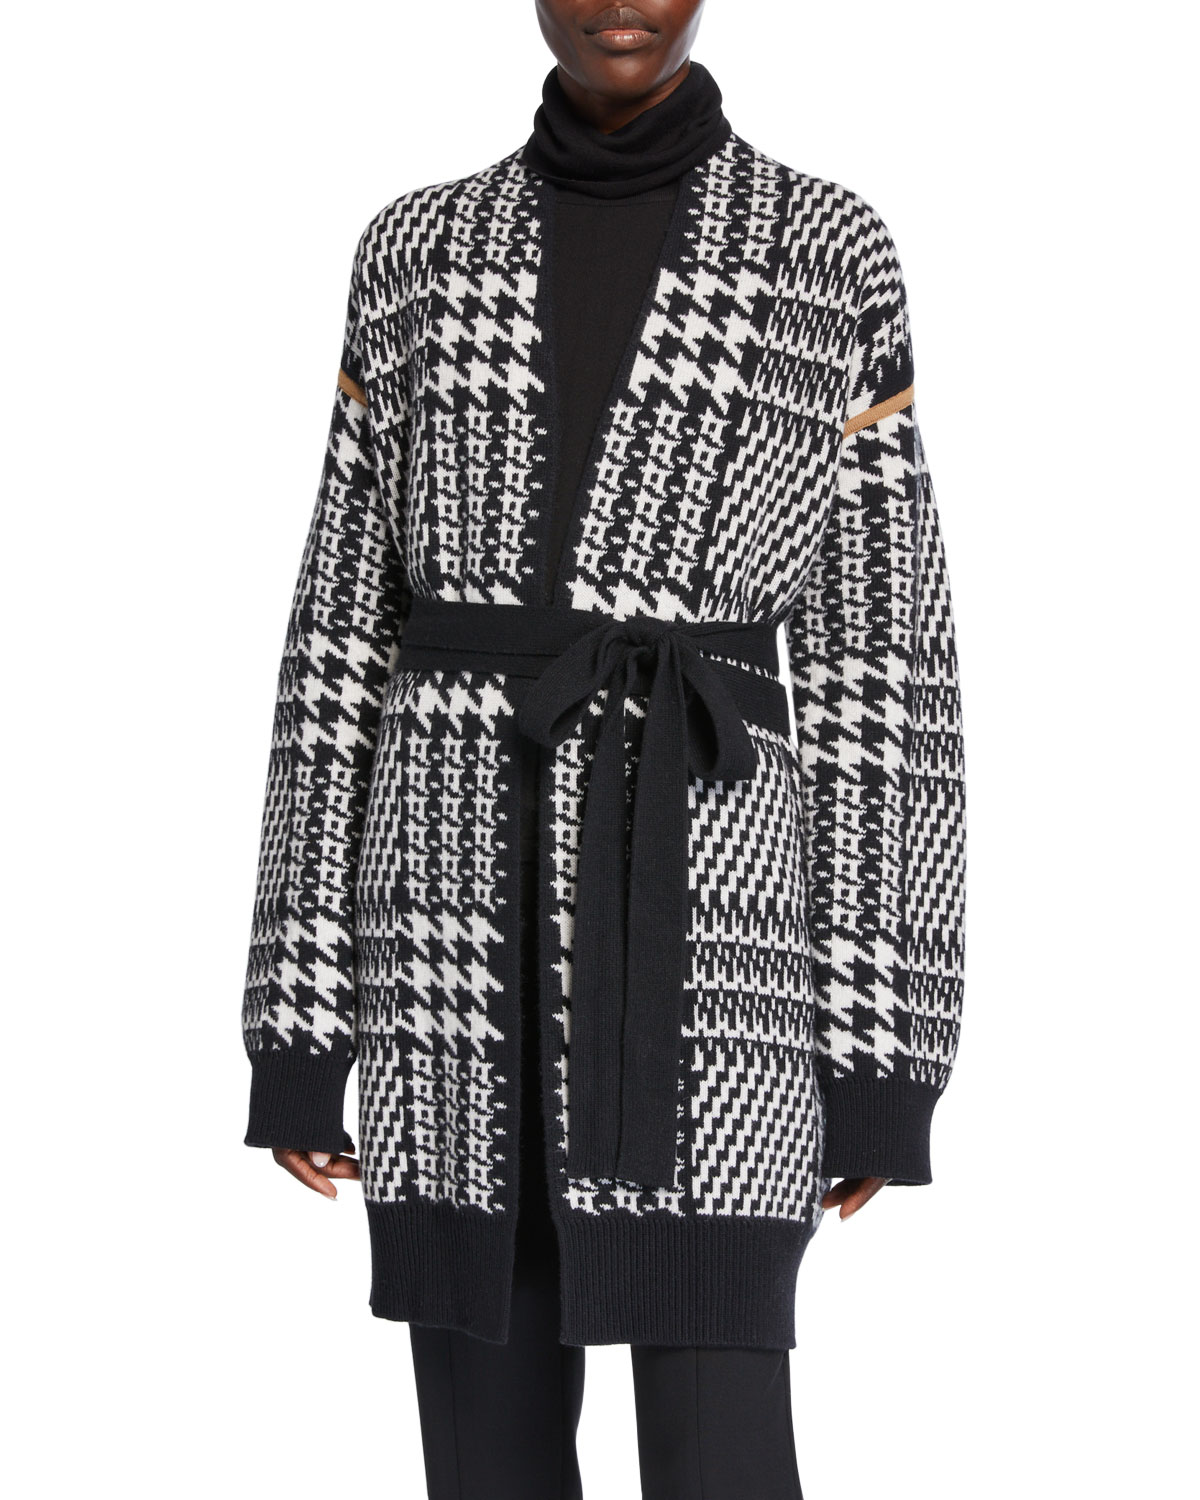 Malizia Houndstooth Wool And Cashmere Blend Cardigan In Black by Max Mara